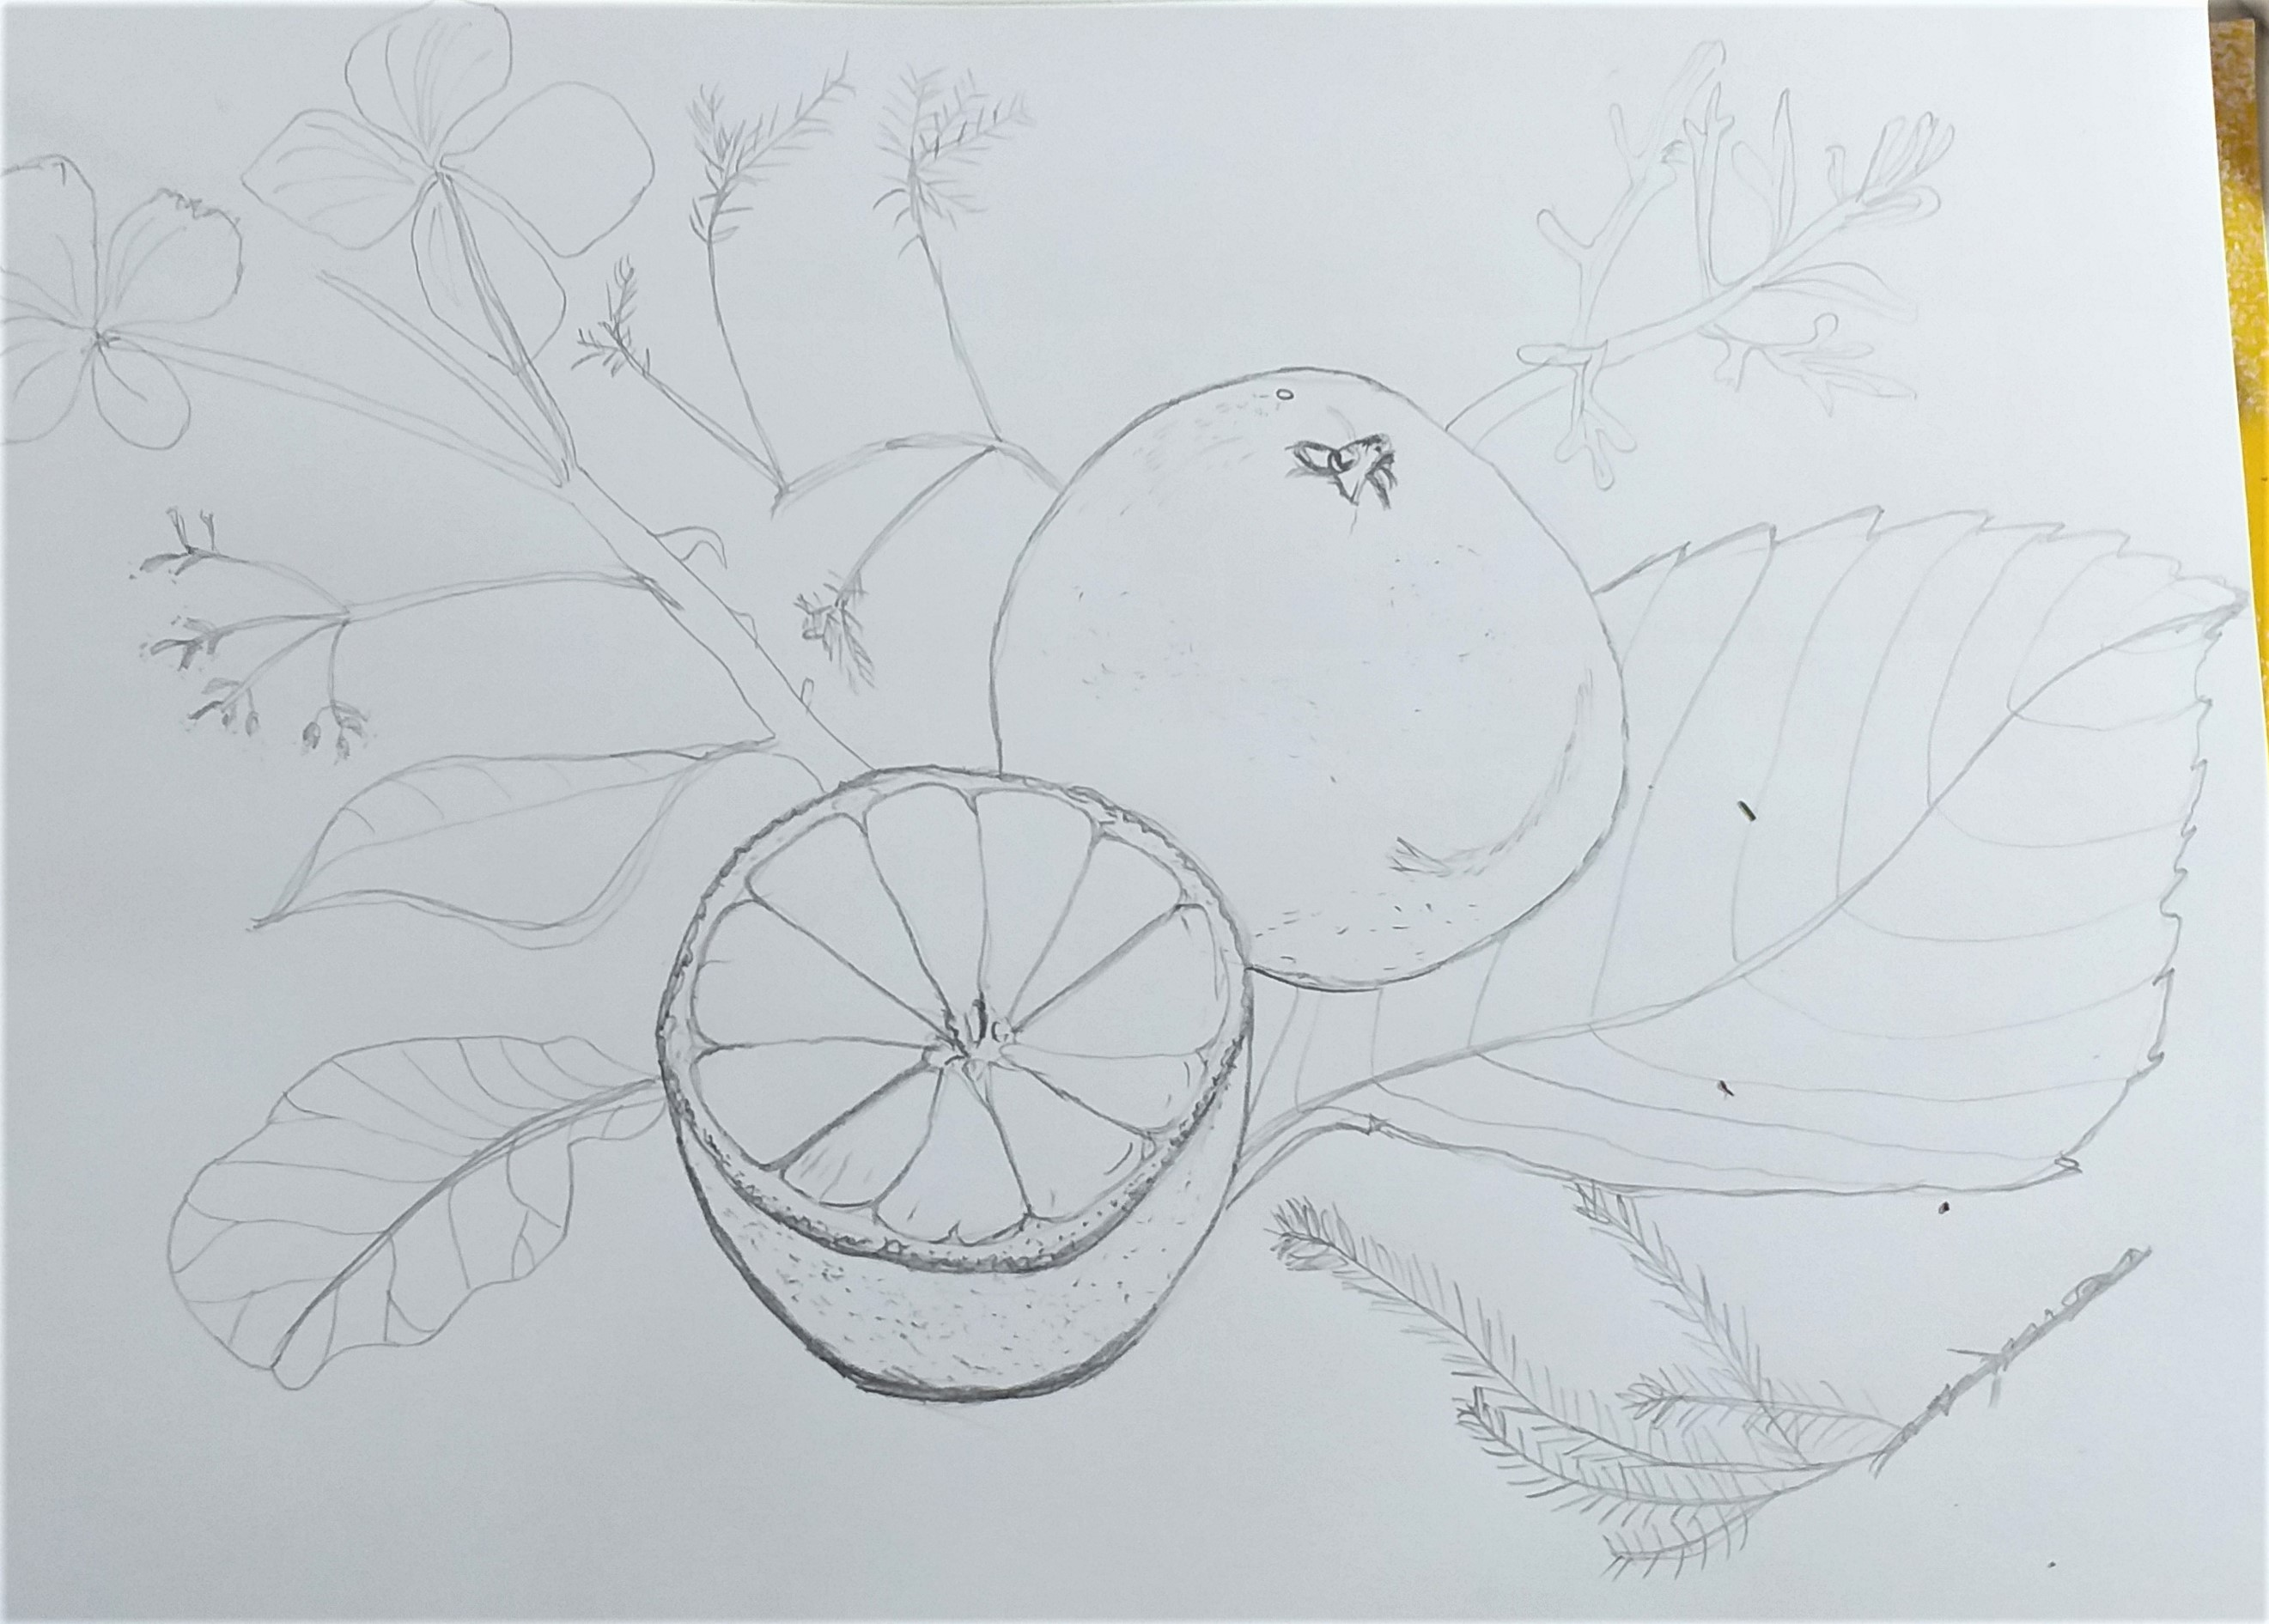 Adelle's drawing of fruit and leaves create at Art classes for absolute beginners at Art classes in Kidderminste